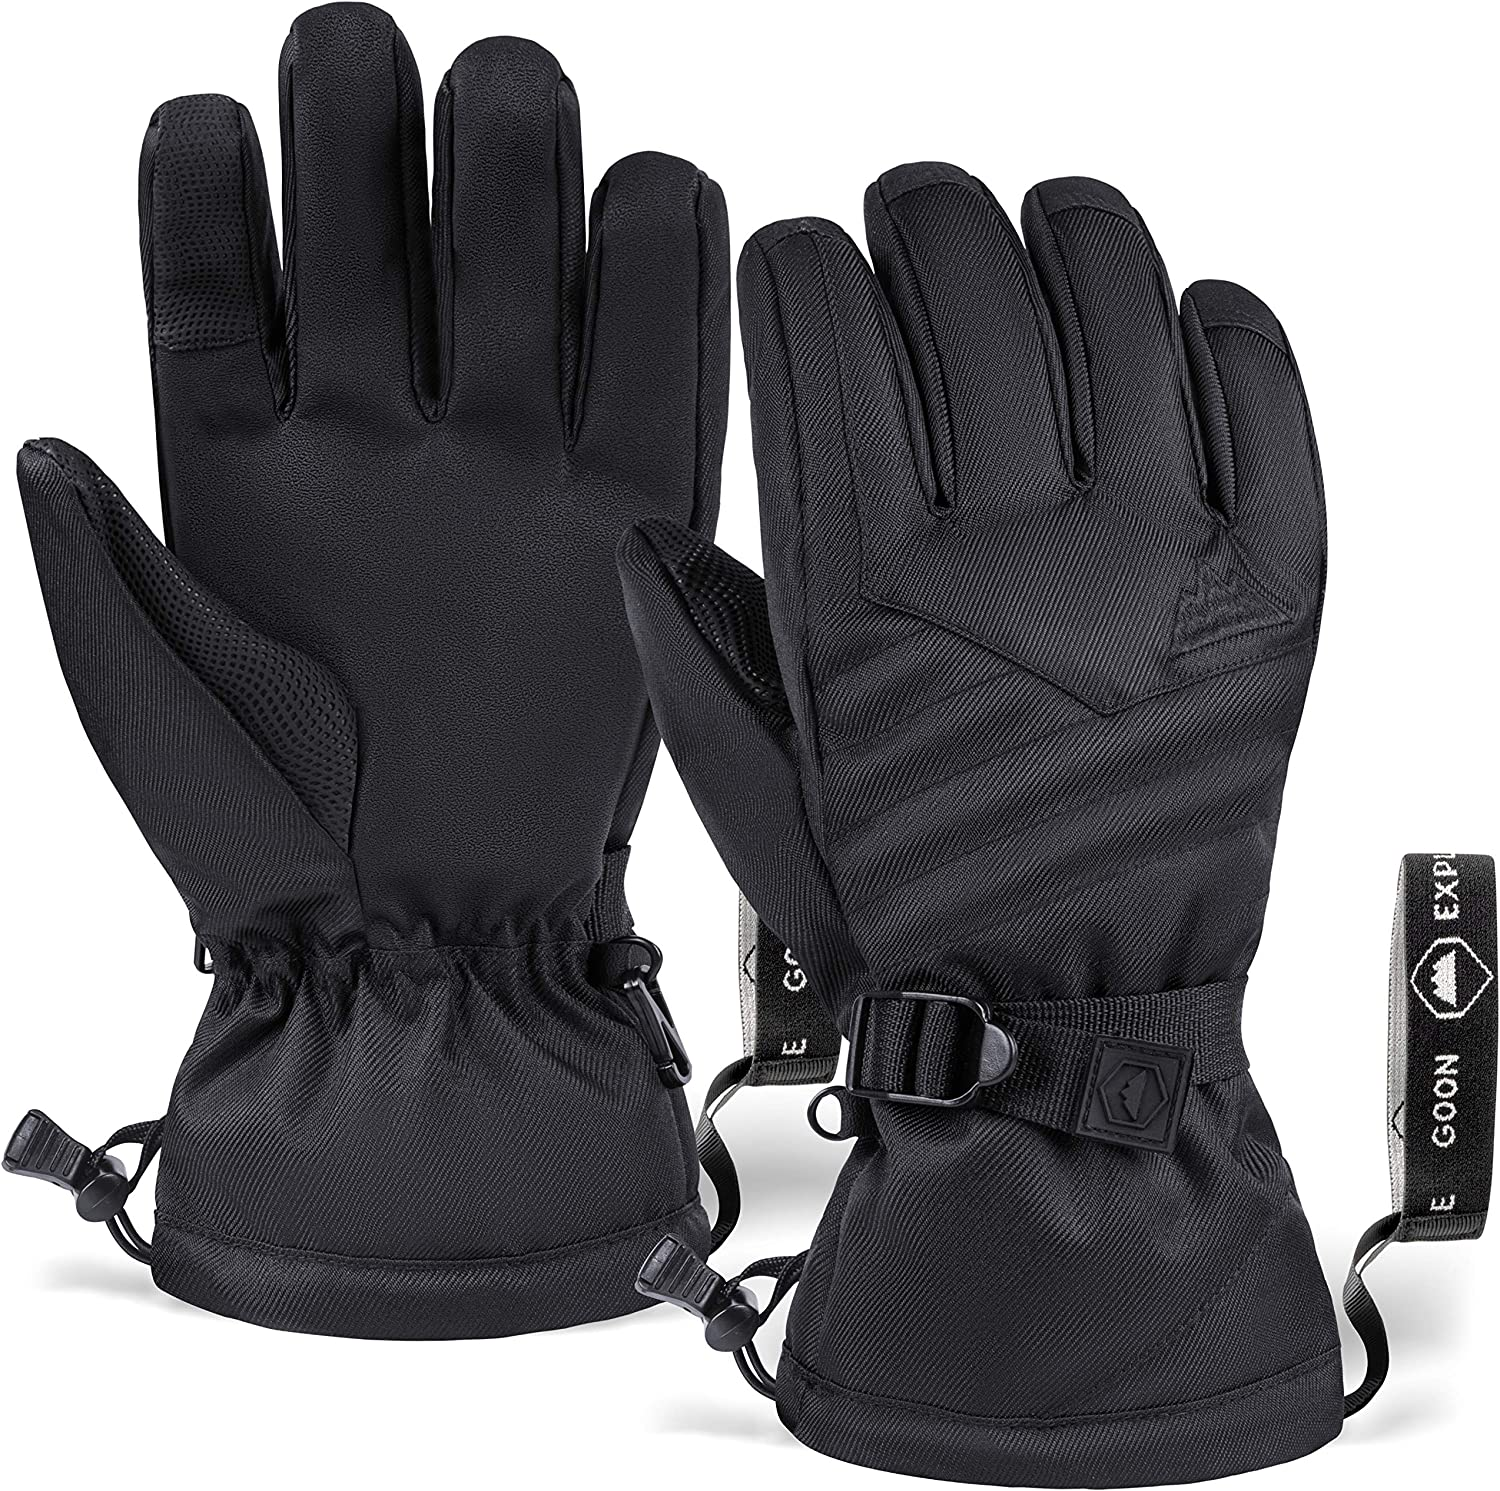 New Leather Glove Fleece Line Diamond Stitched Driving Winter Thermal Gloves